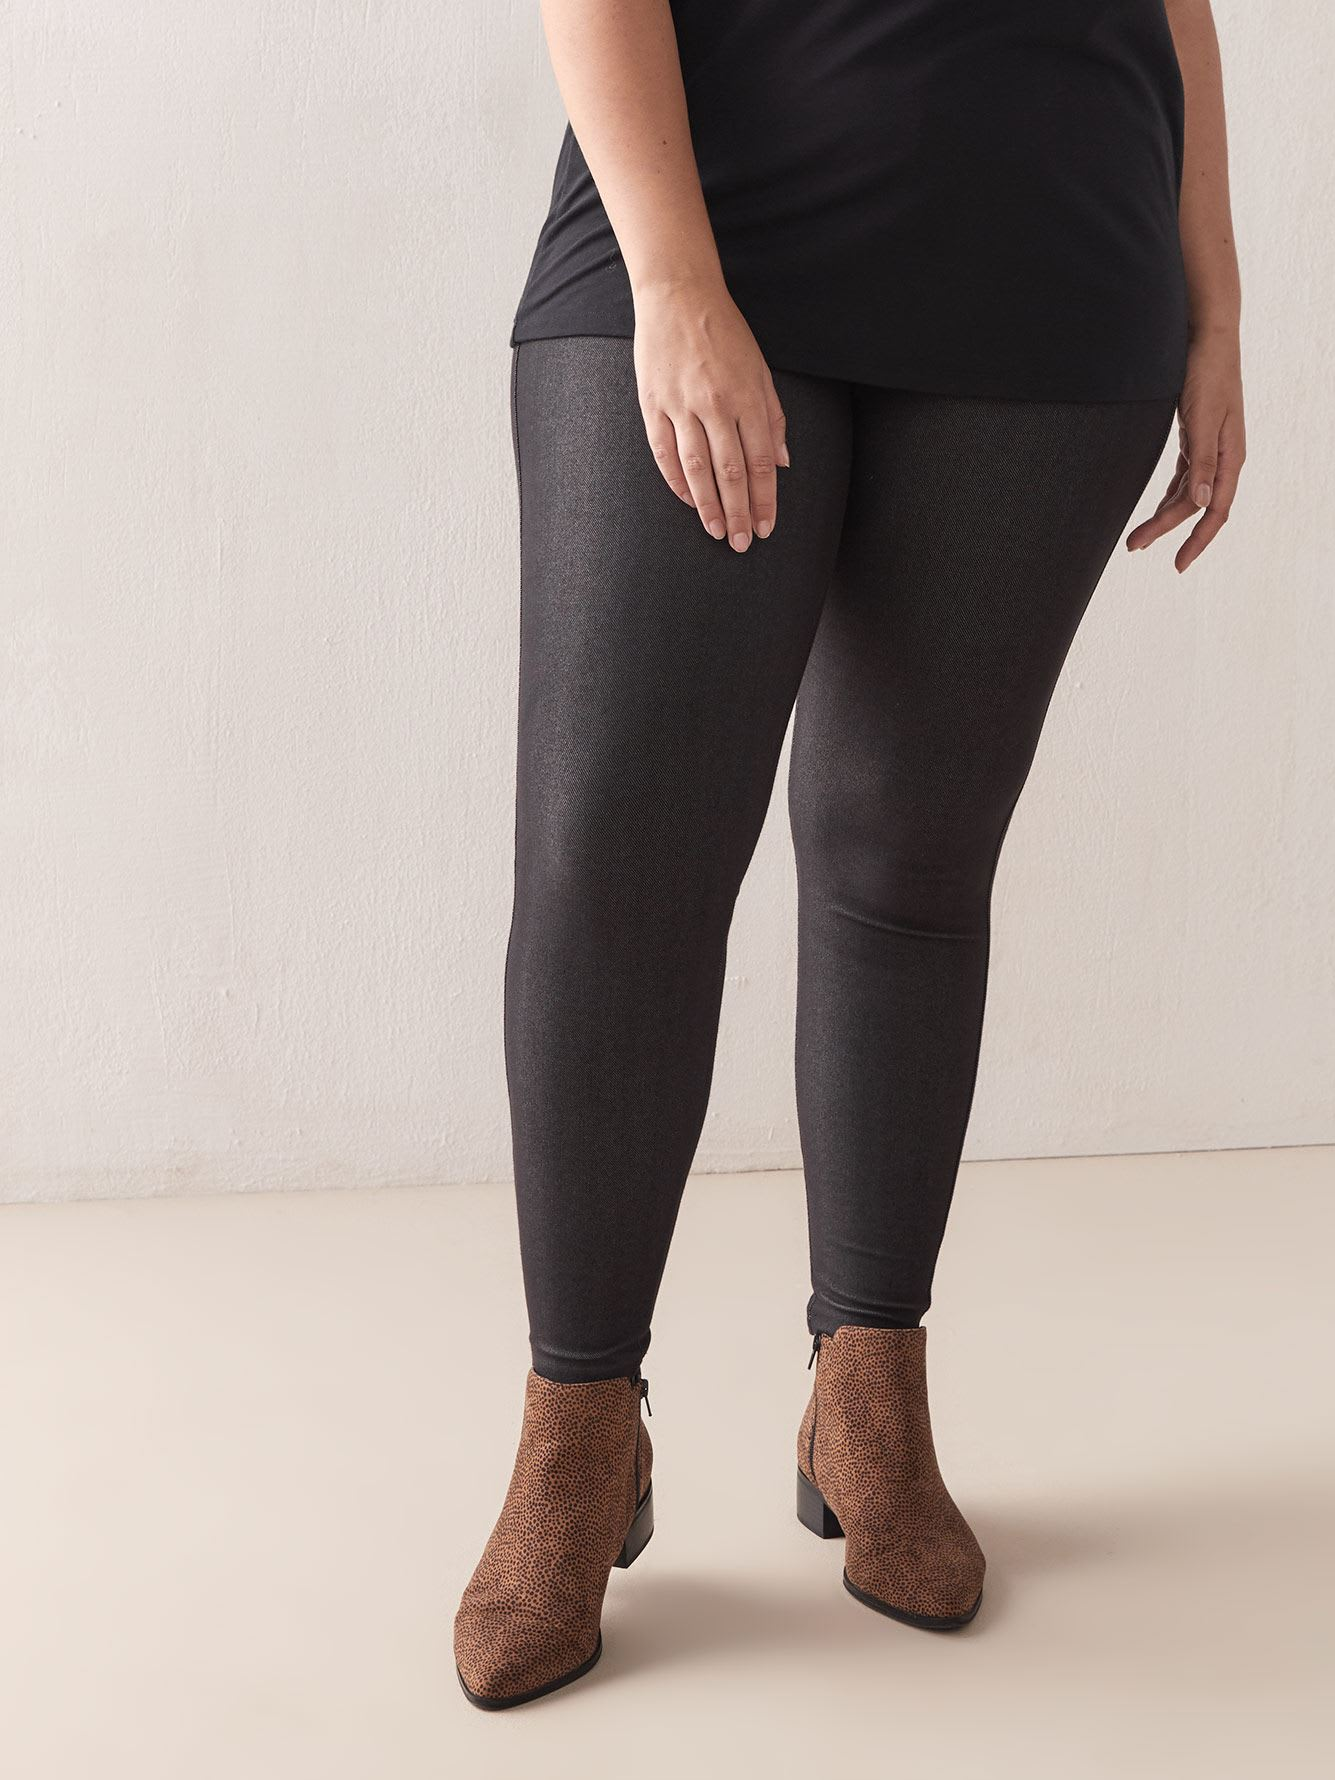 Tall, Solid Denim Leggings with Elastic Waistband - Addition Elle